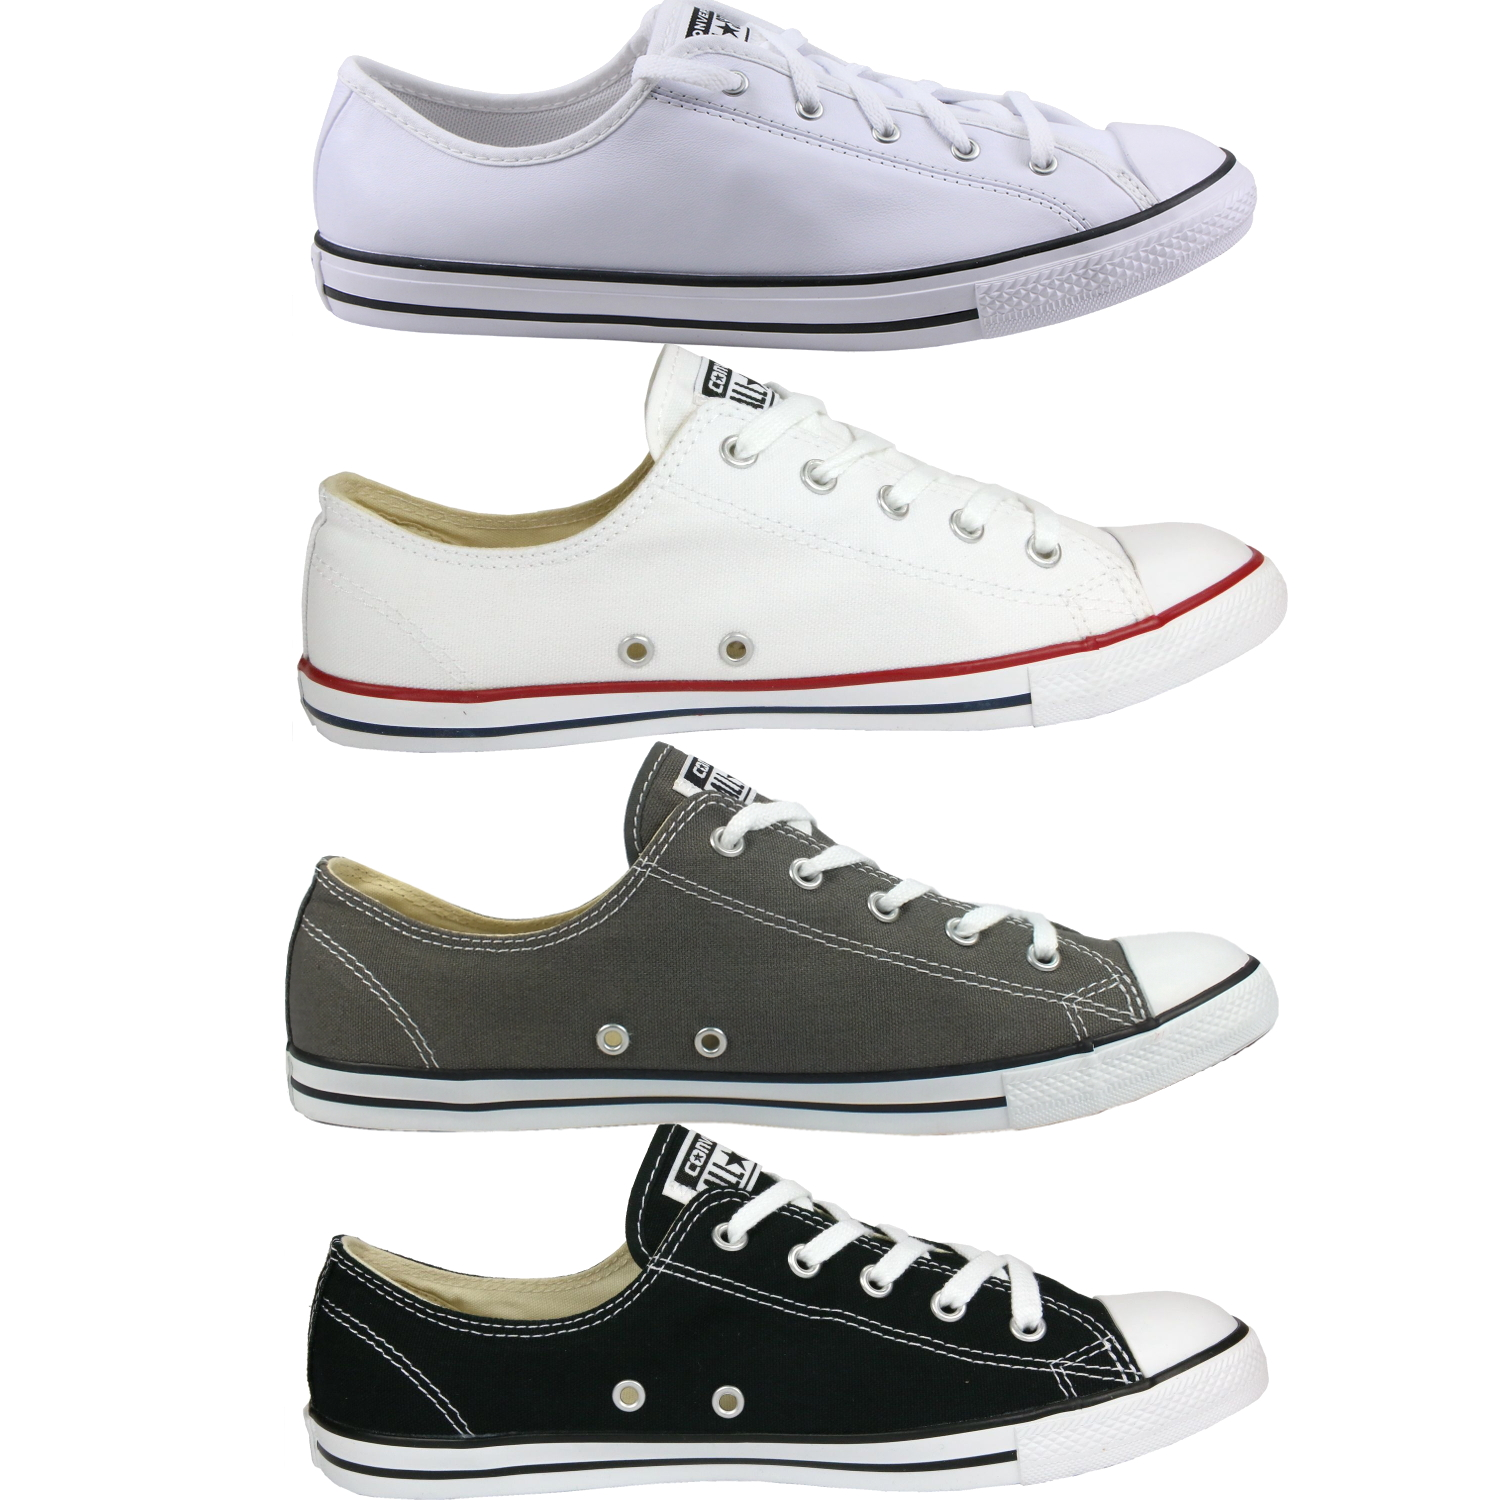 converse all star chuck taylor dainty ox schuhe sneaker. Black Bedroom Furniture Sets. Home Design Ideas